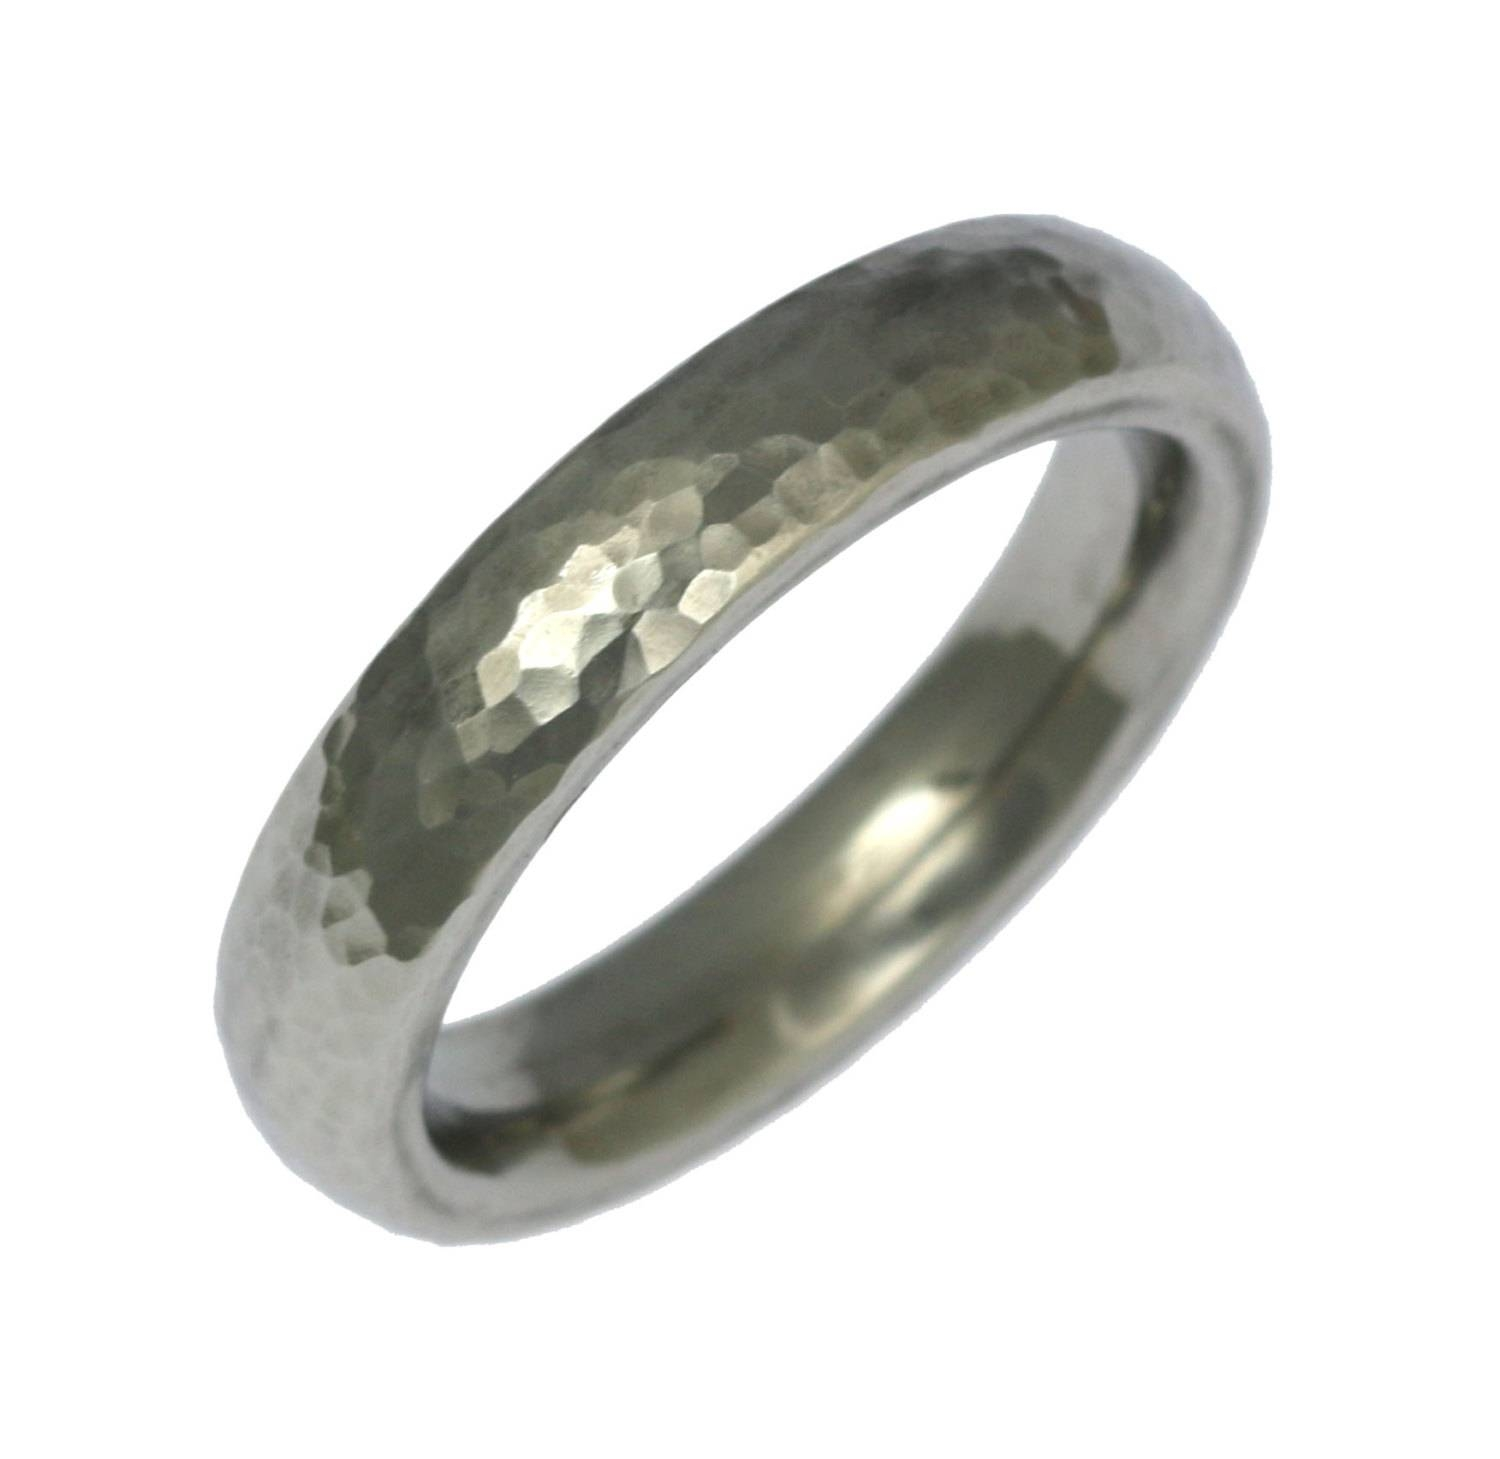 5Mm Hammered Stainless Steel Mens Ring Mens Hammered Wedding Regarding Latest Platinum Hammered Wedding Bands (View 1 of 15)